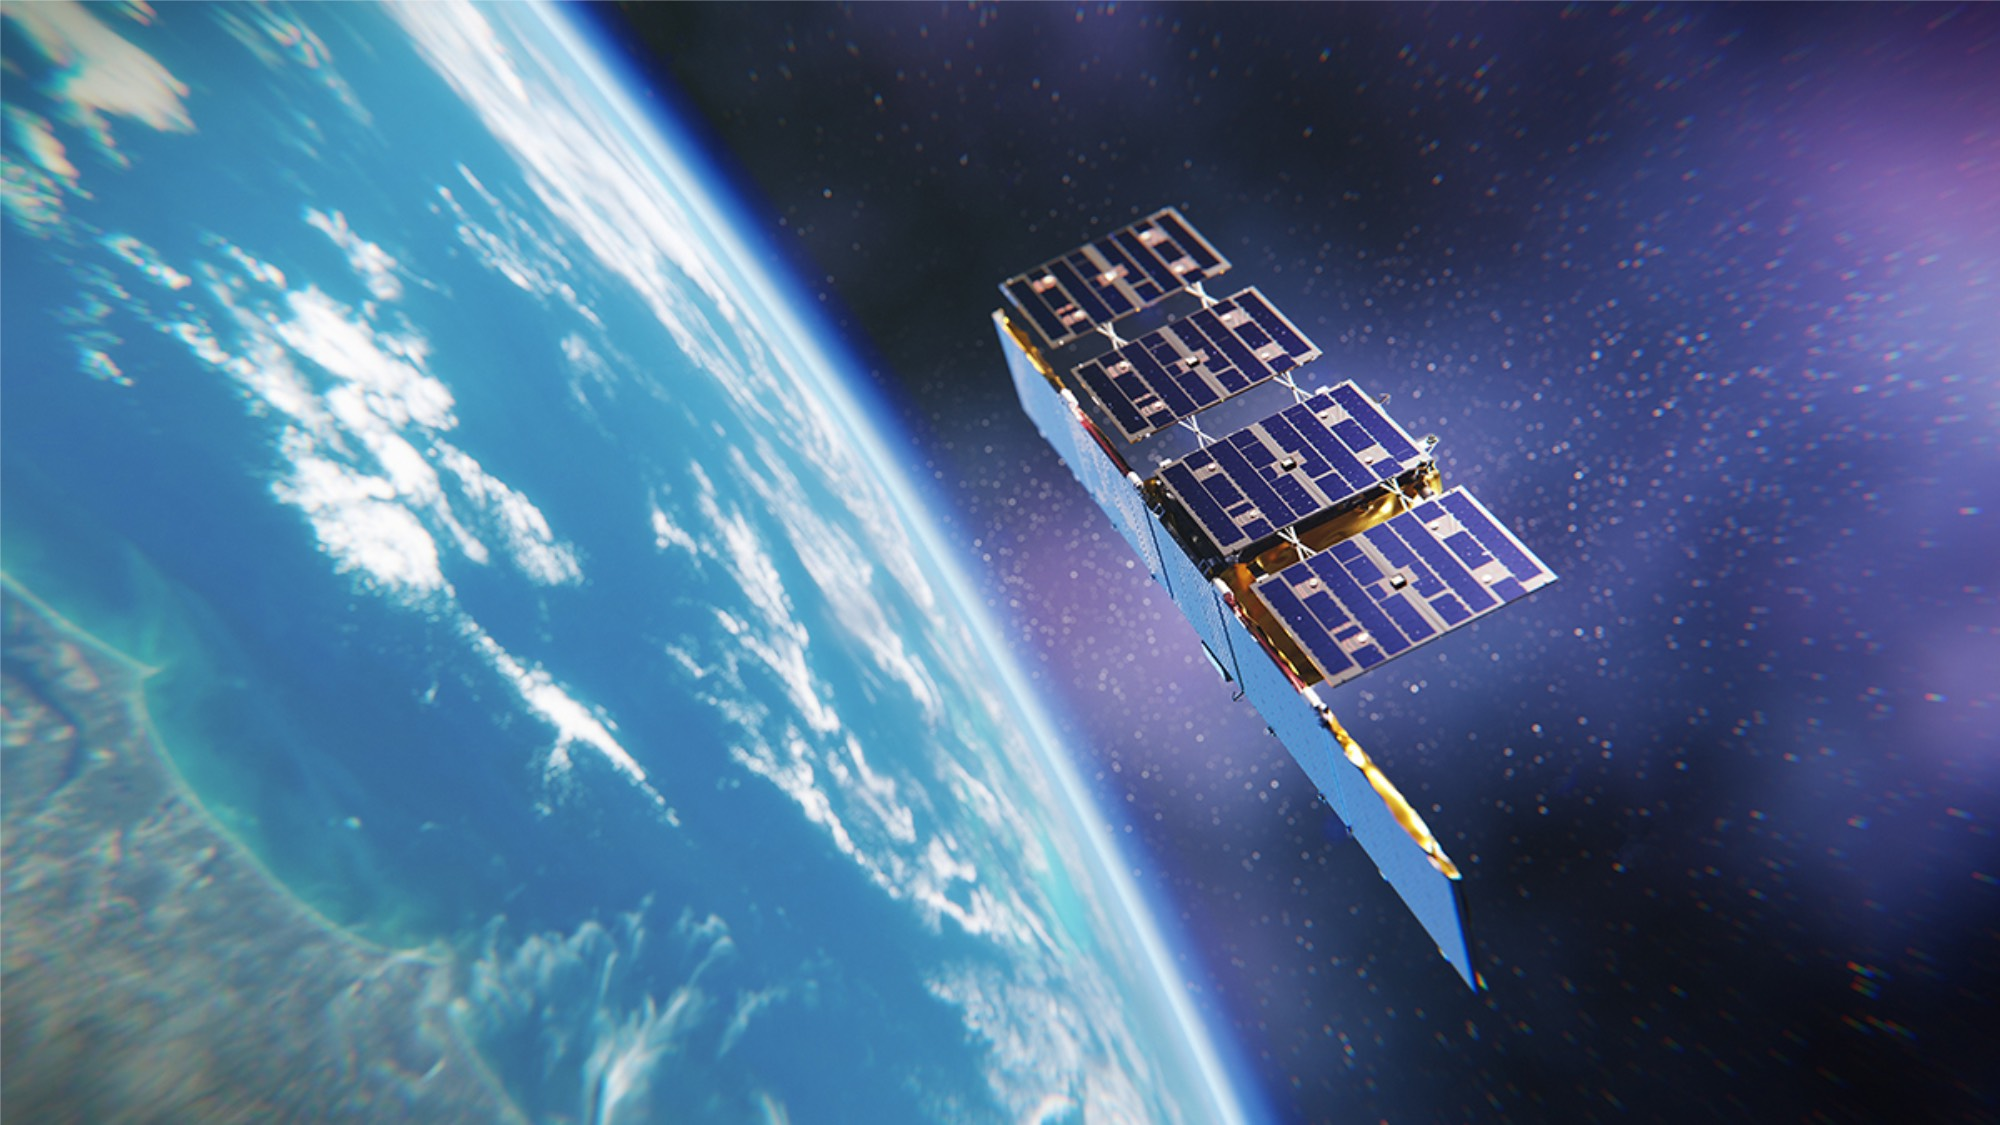 An illustration of ICEYE's SAR satellite above earth